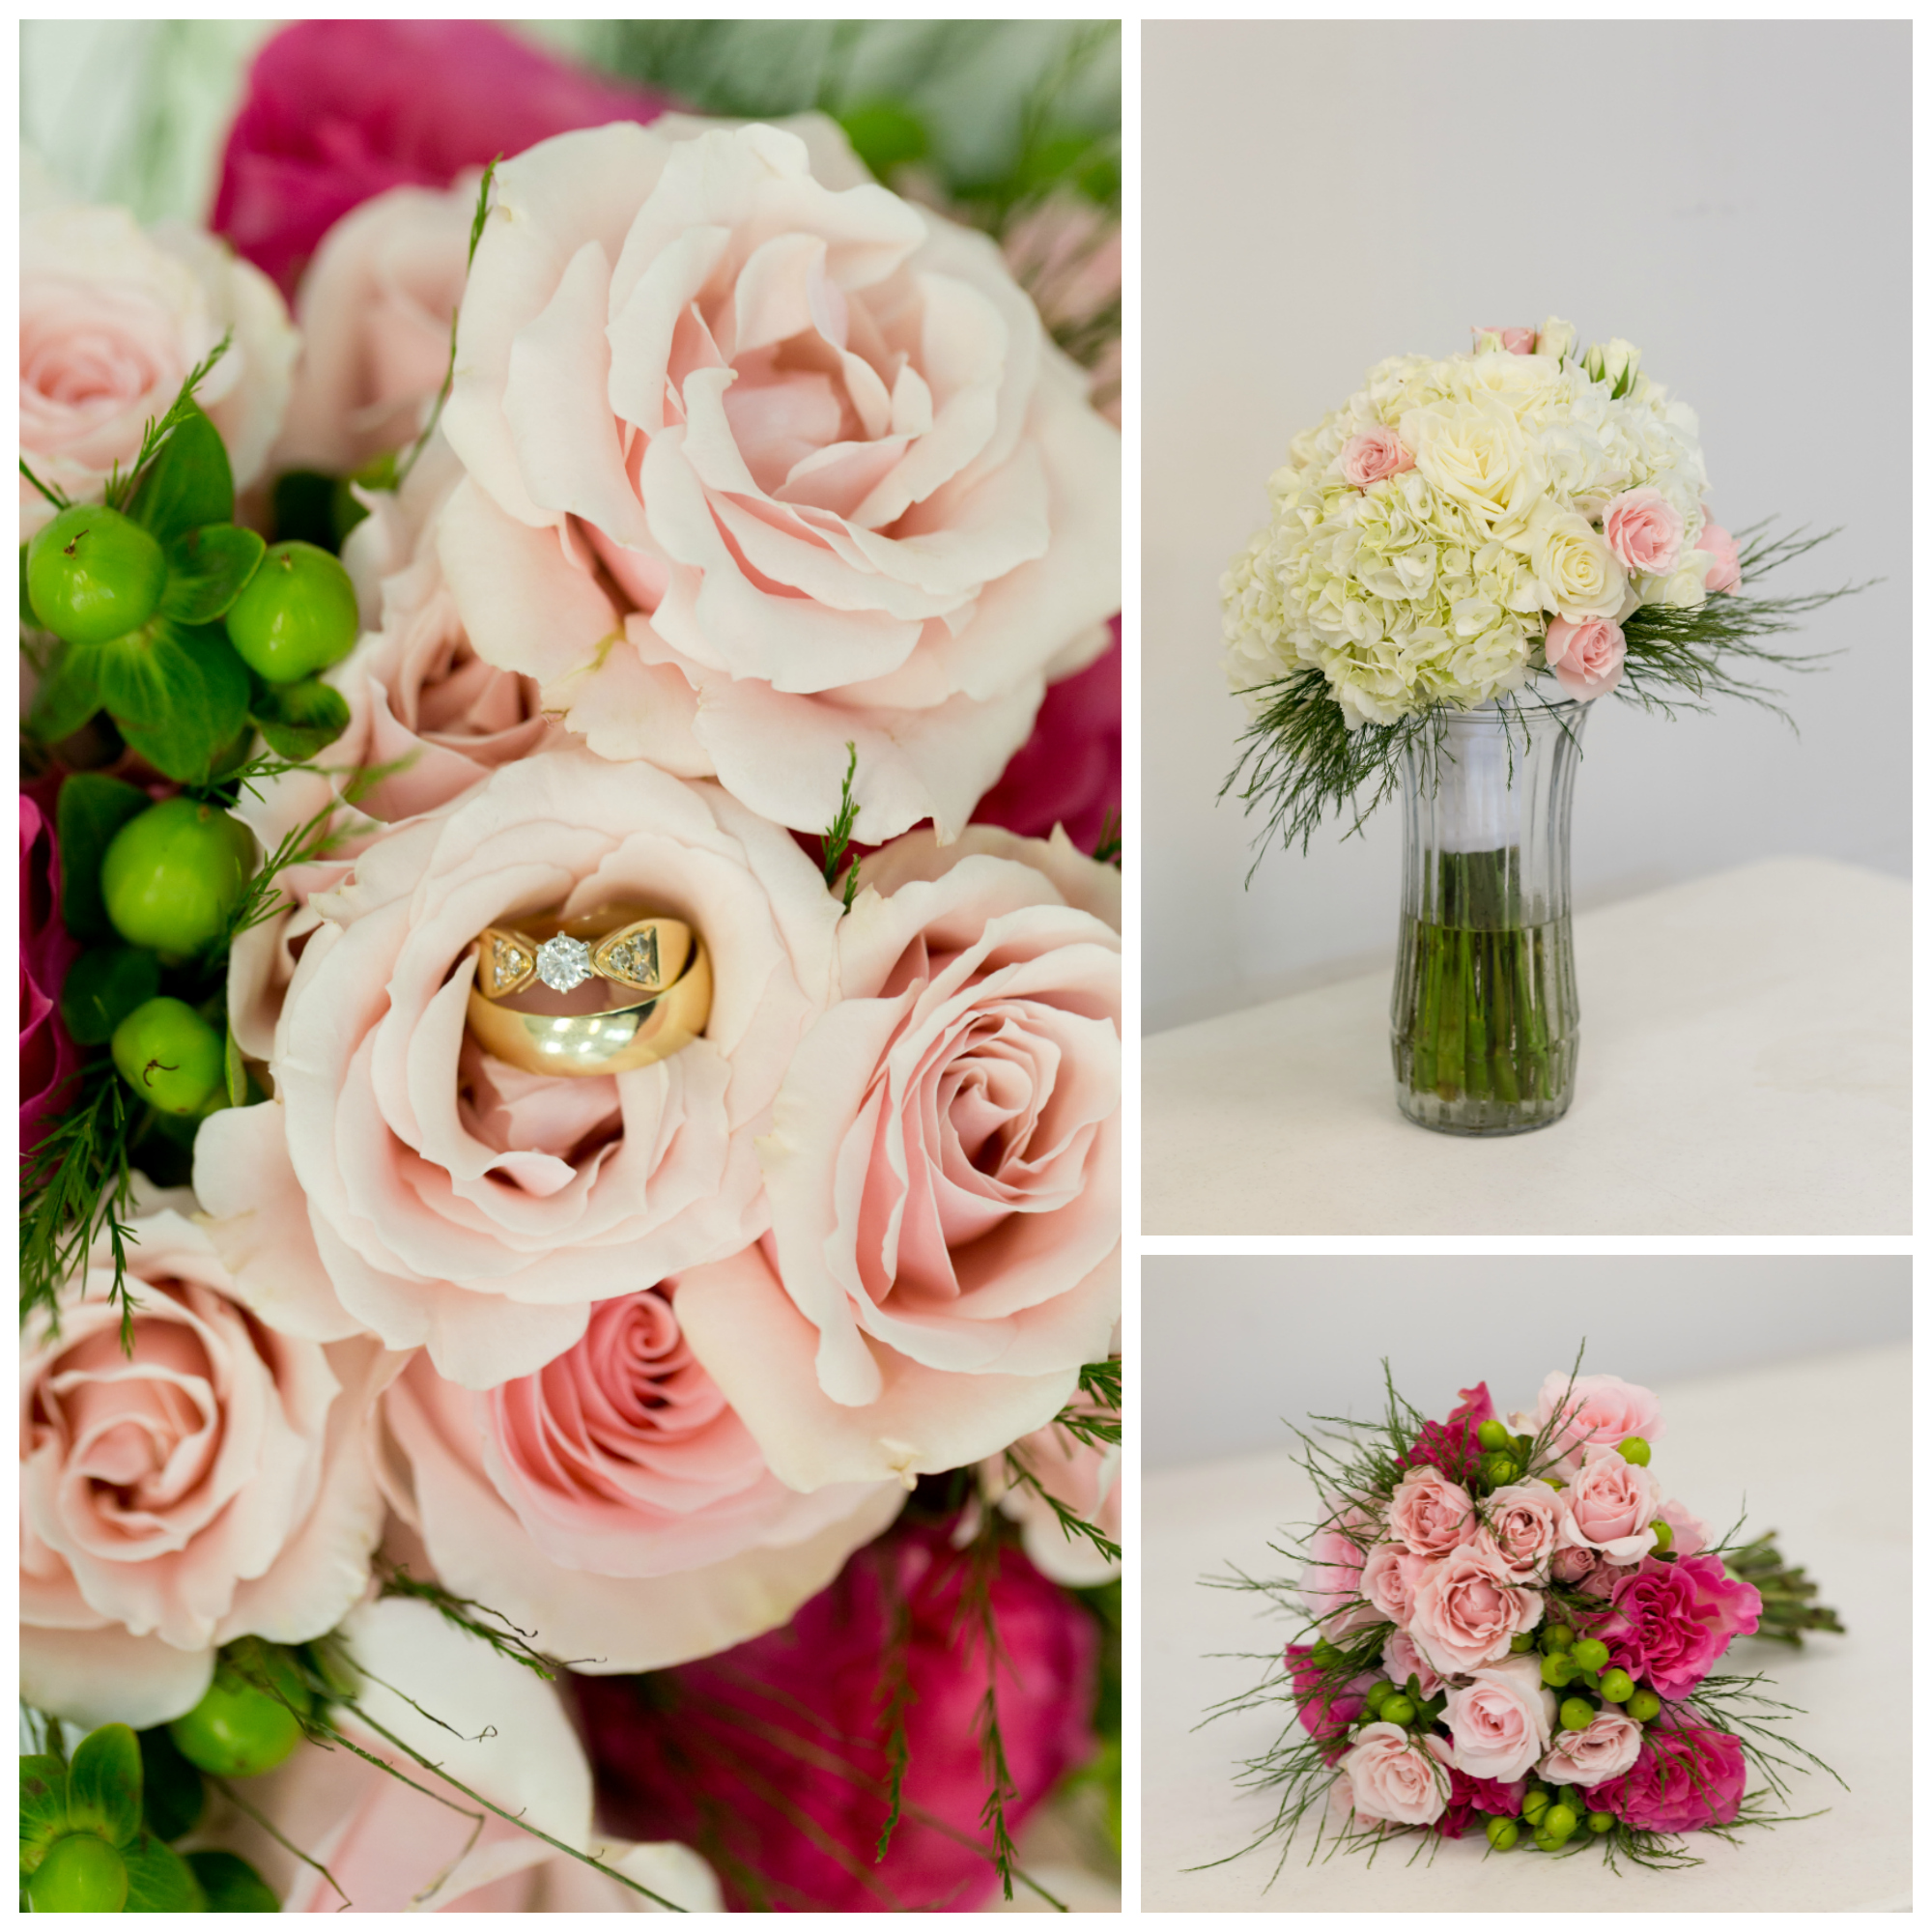 pink, white, and green wedding flower bouquets by Chez Charles in Ocean Springs, Mississippi